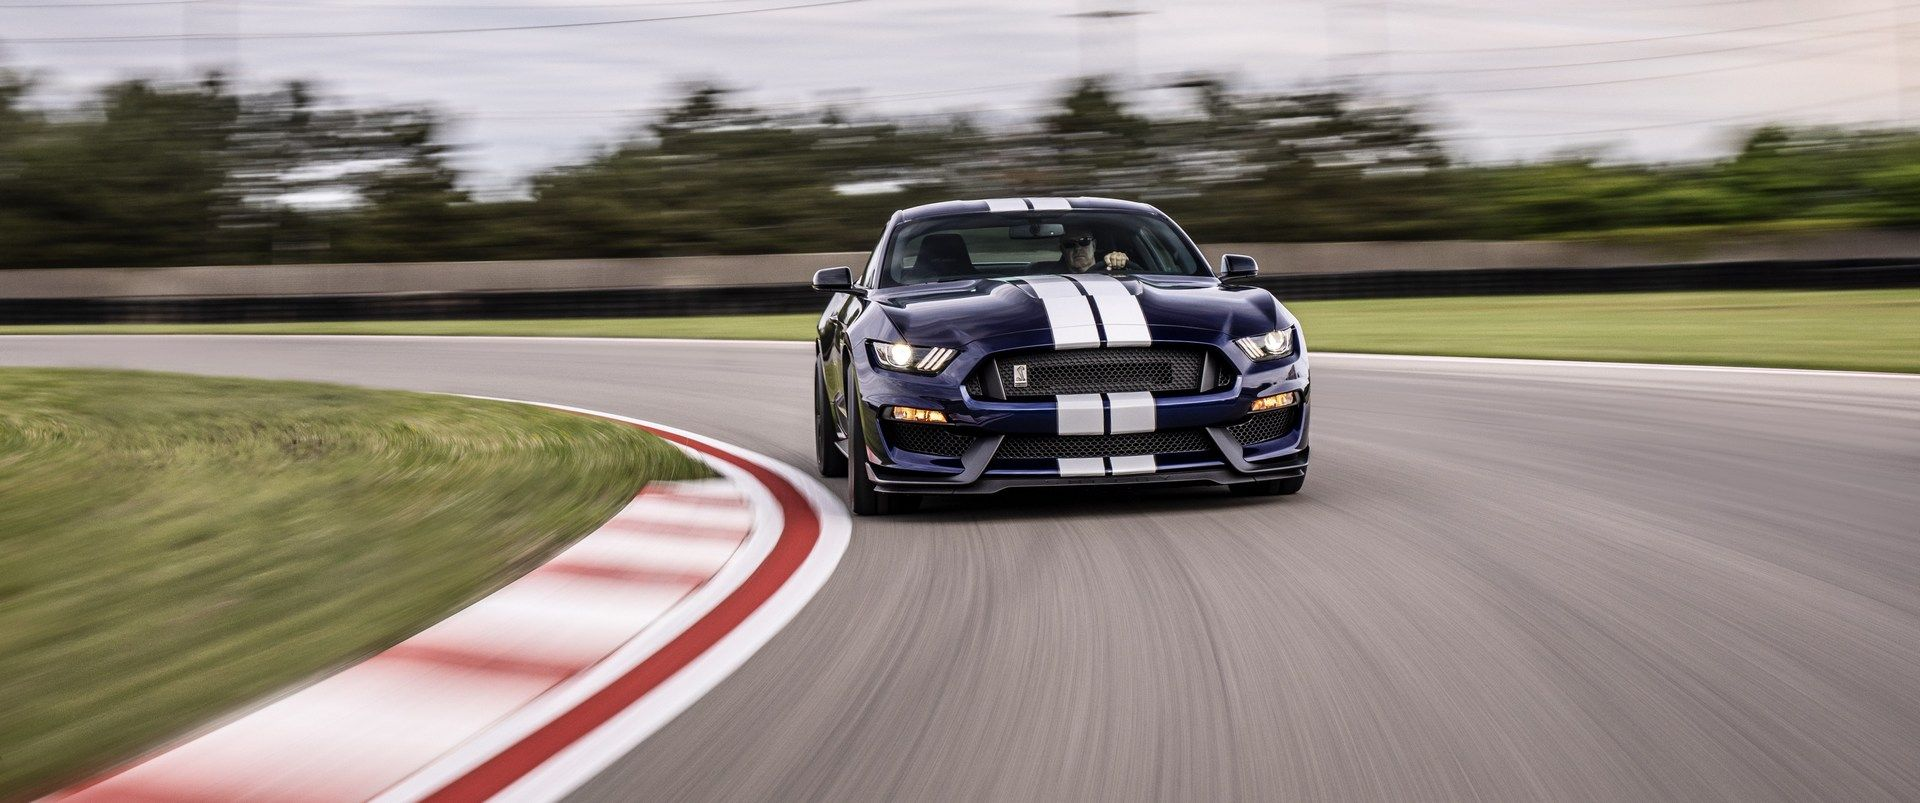 2019_Ford_Mustang_Shelby_GT350_0004